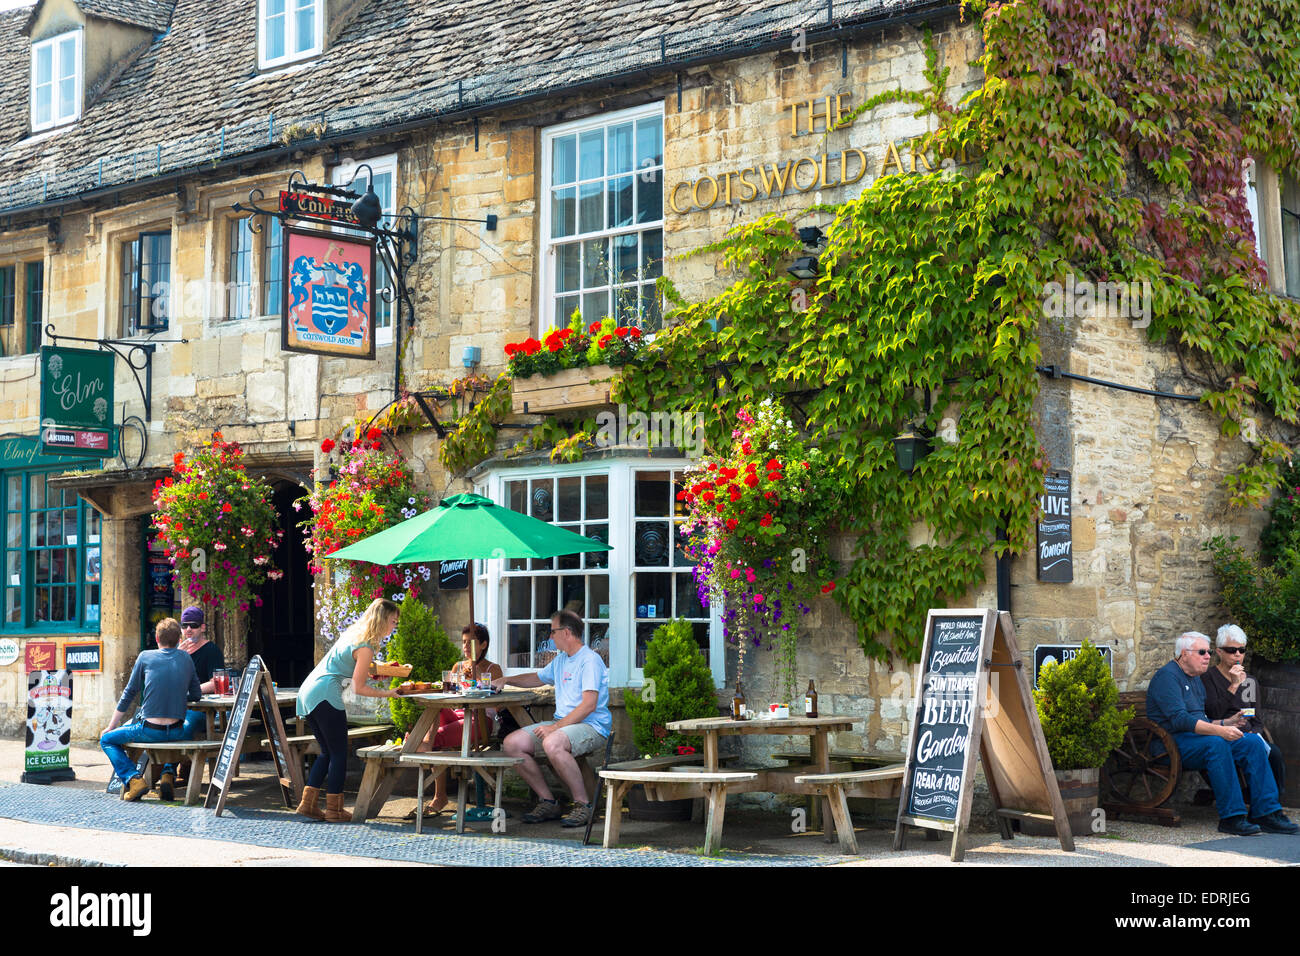 Tourists at The Cotswolds Arms inn traditional old gastro pub  in Burford in The Cotswolds, Oxfordshire, UK - Stock Image